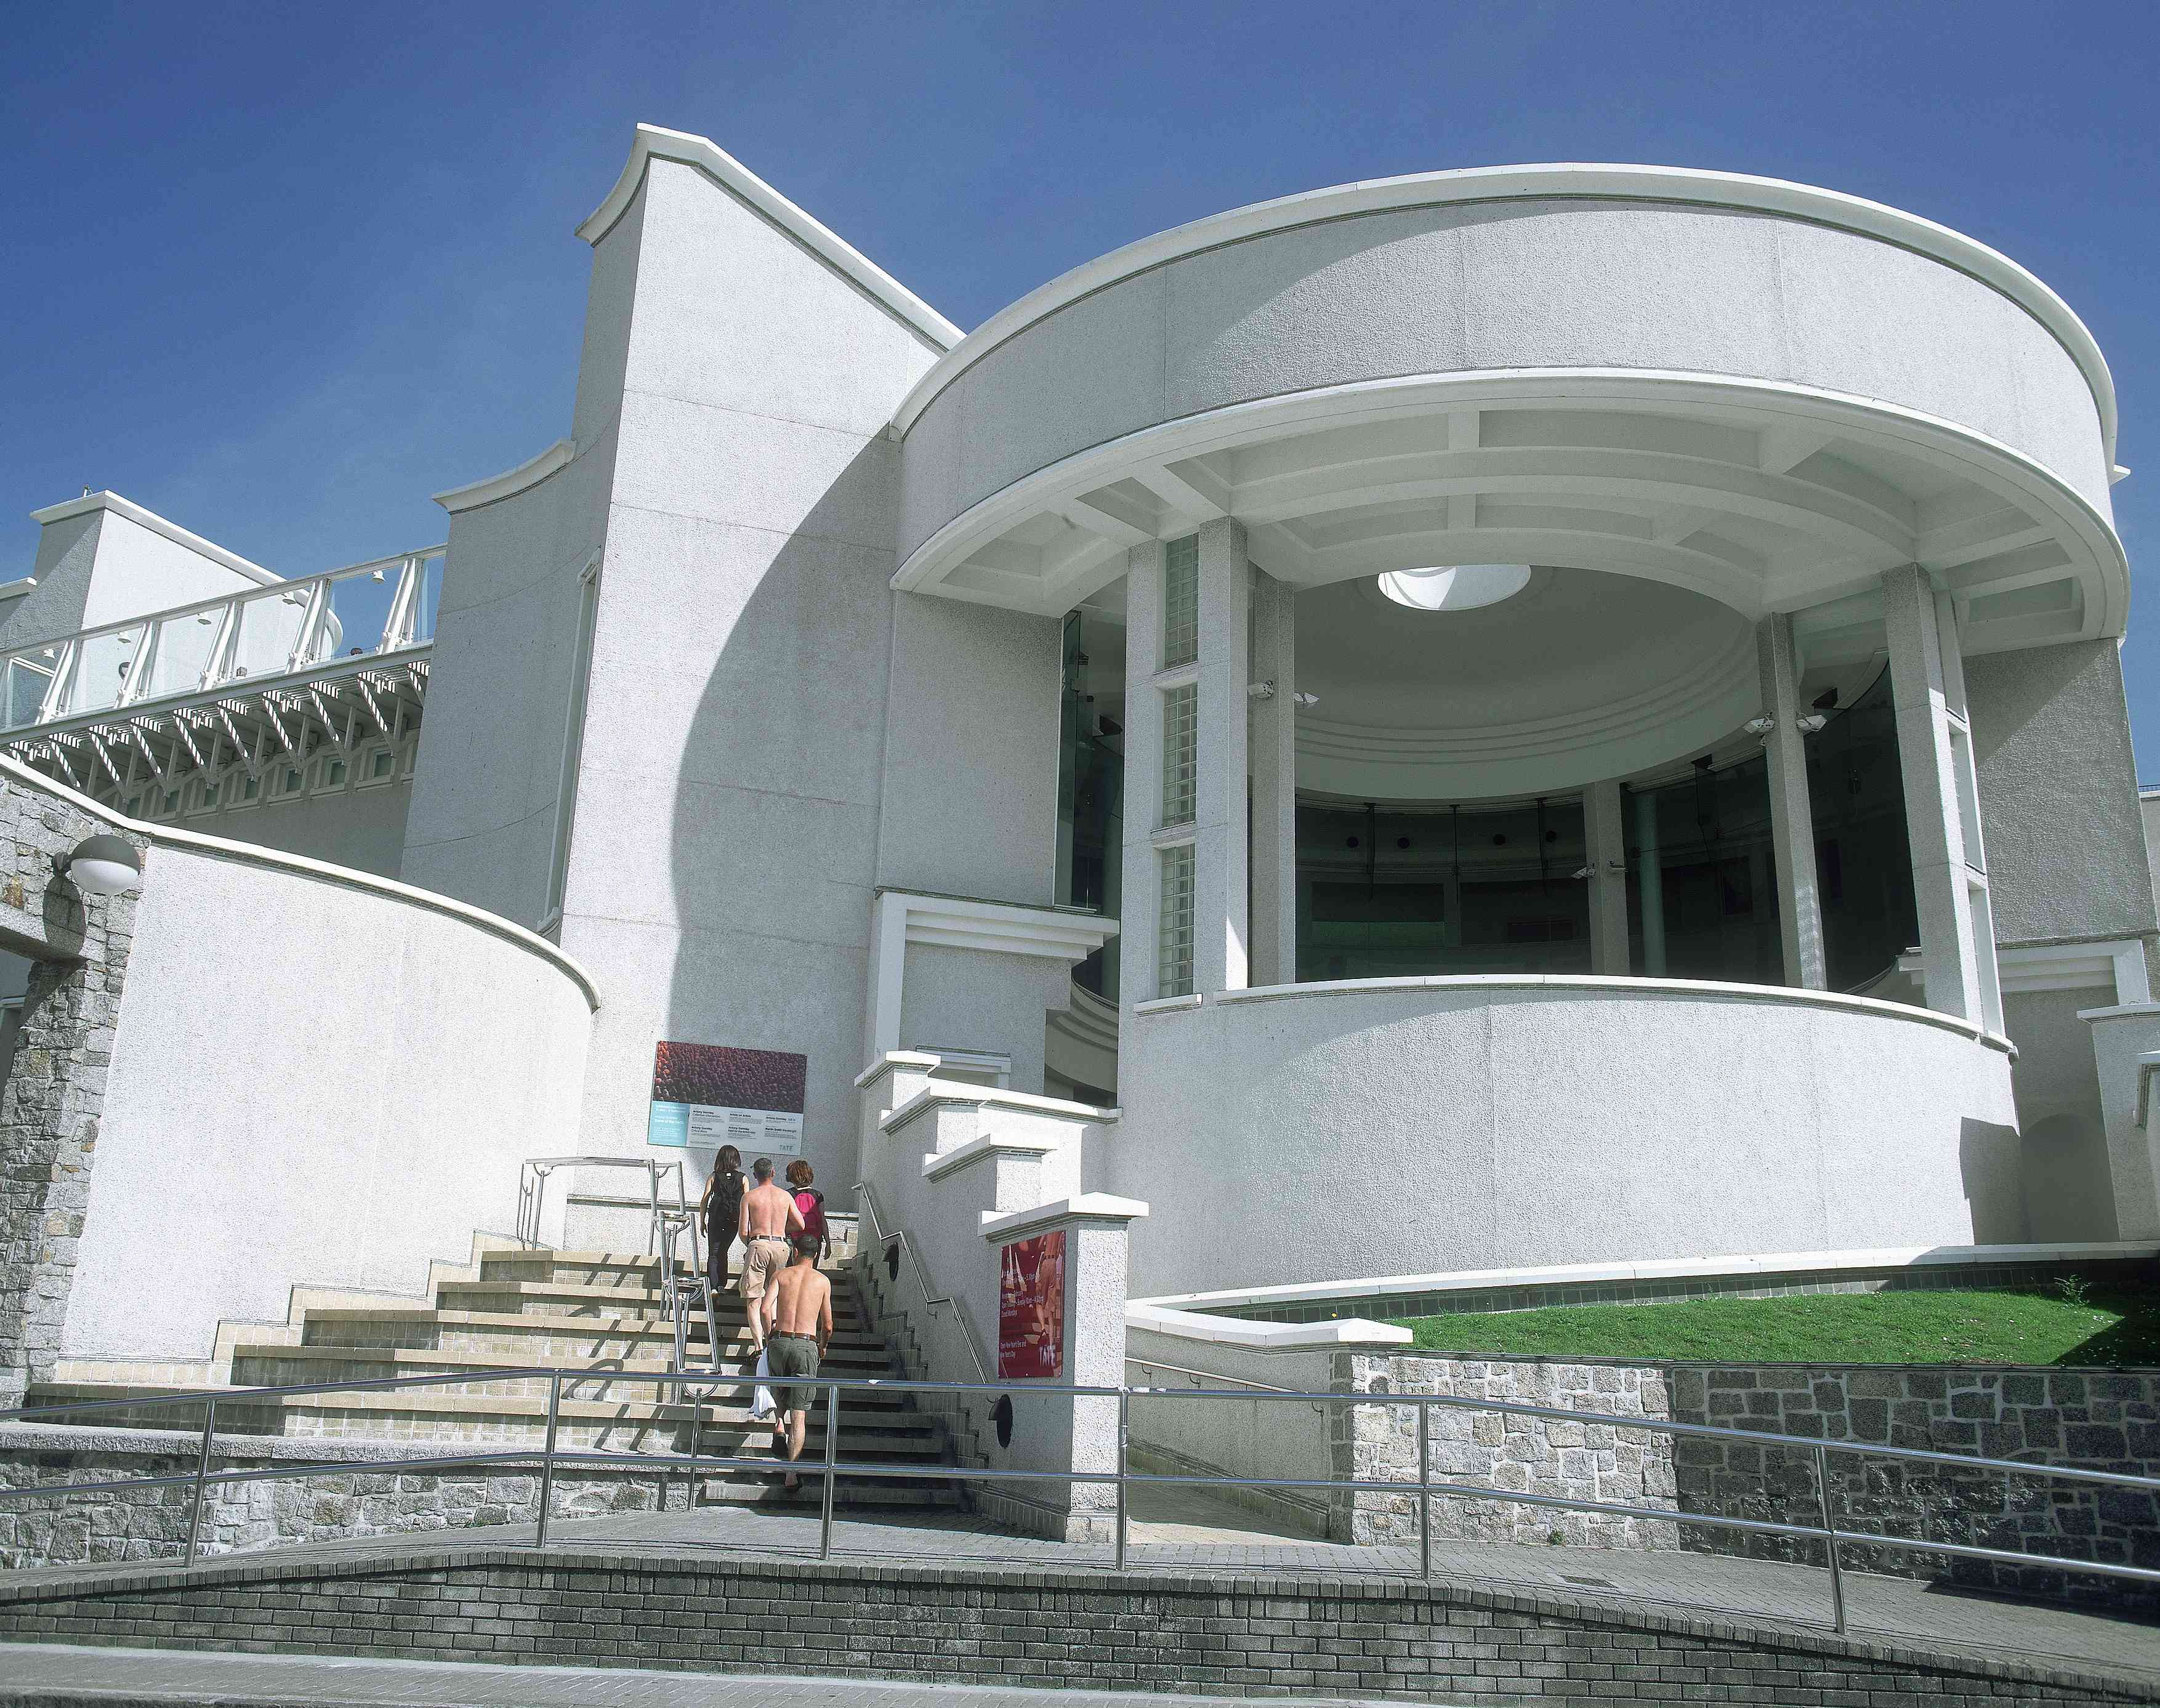 Visitors climbing the steps of the round pavilion of the Tate St Ives